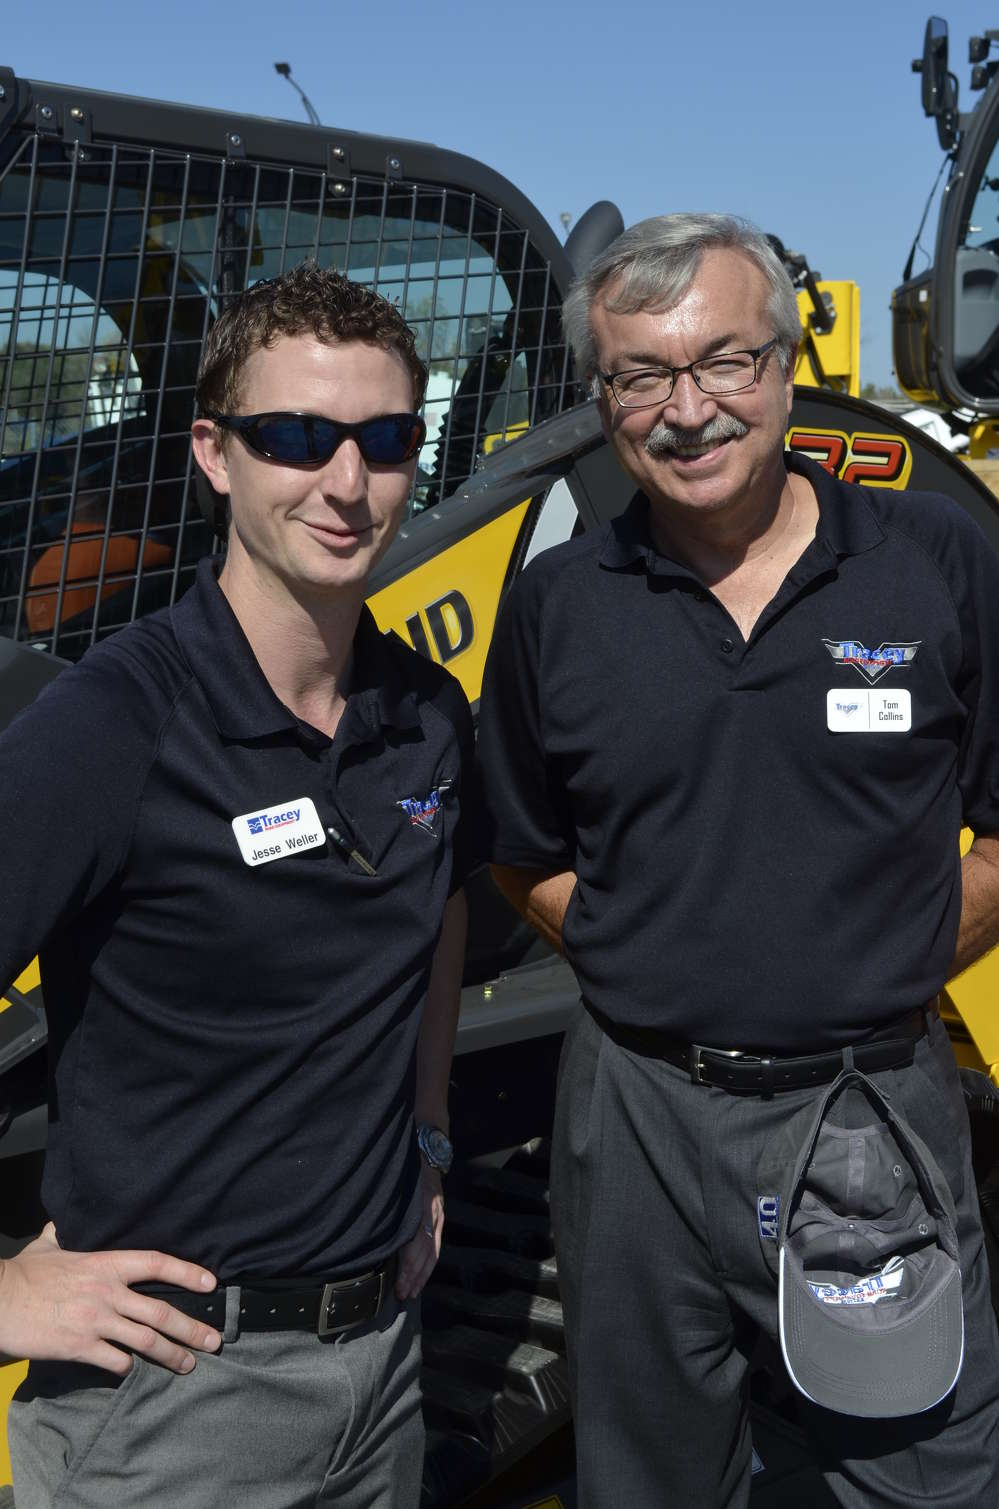 Jesse Weller (L), inside sales, and Tom Collins, Tracey Road Equipment used equipment manager, are ready to assist customers who wish to purchase a New Holland skid steer.